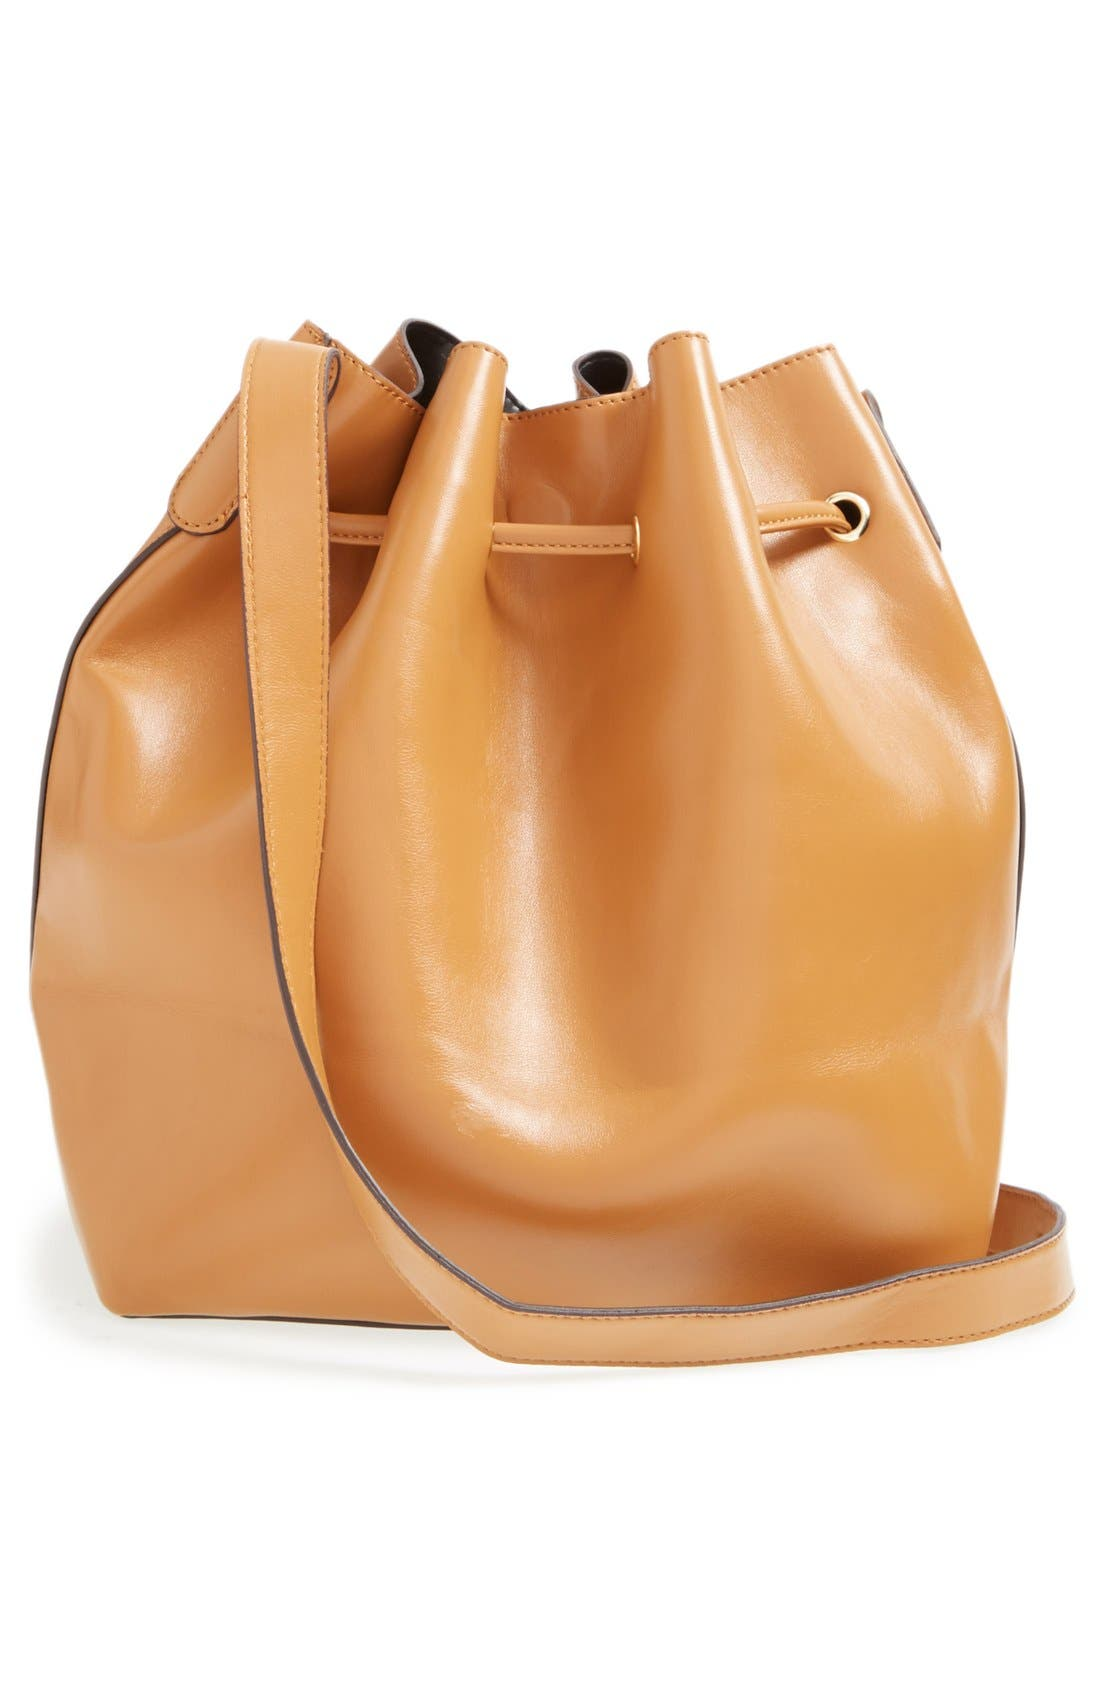 SOLE SOCIETY,                             'Nevin' Faux Leather Drawstring Bucket Bag,                             Alternate thumbnail 3, color,                             200